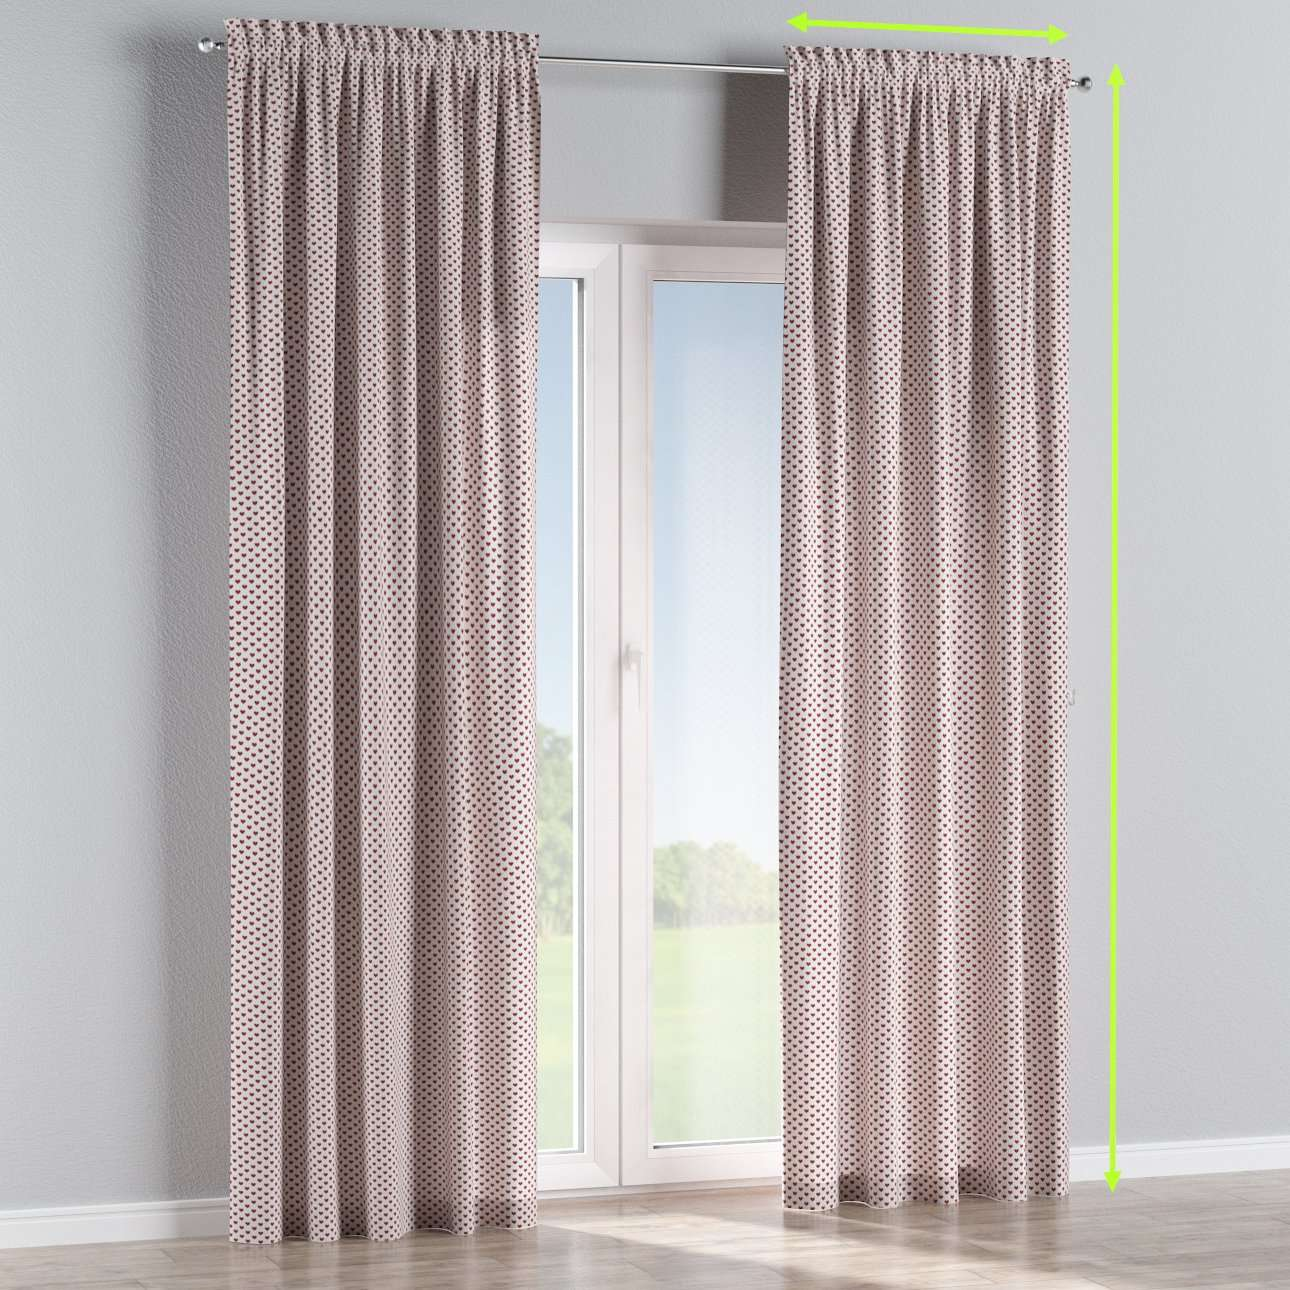 Slot and frill lined curtains in collection Nordic, fabric: 630-04